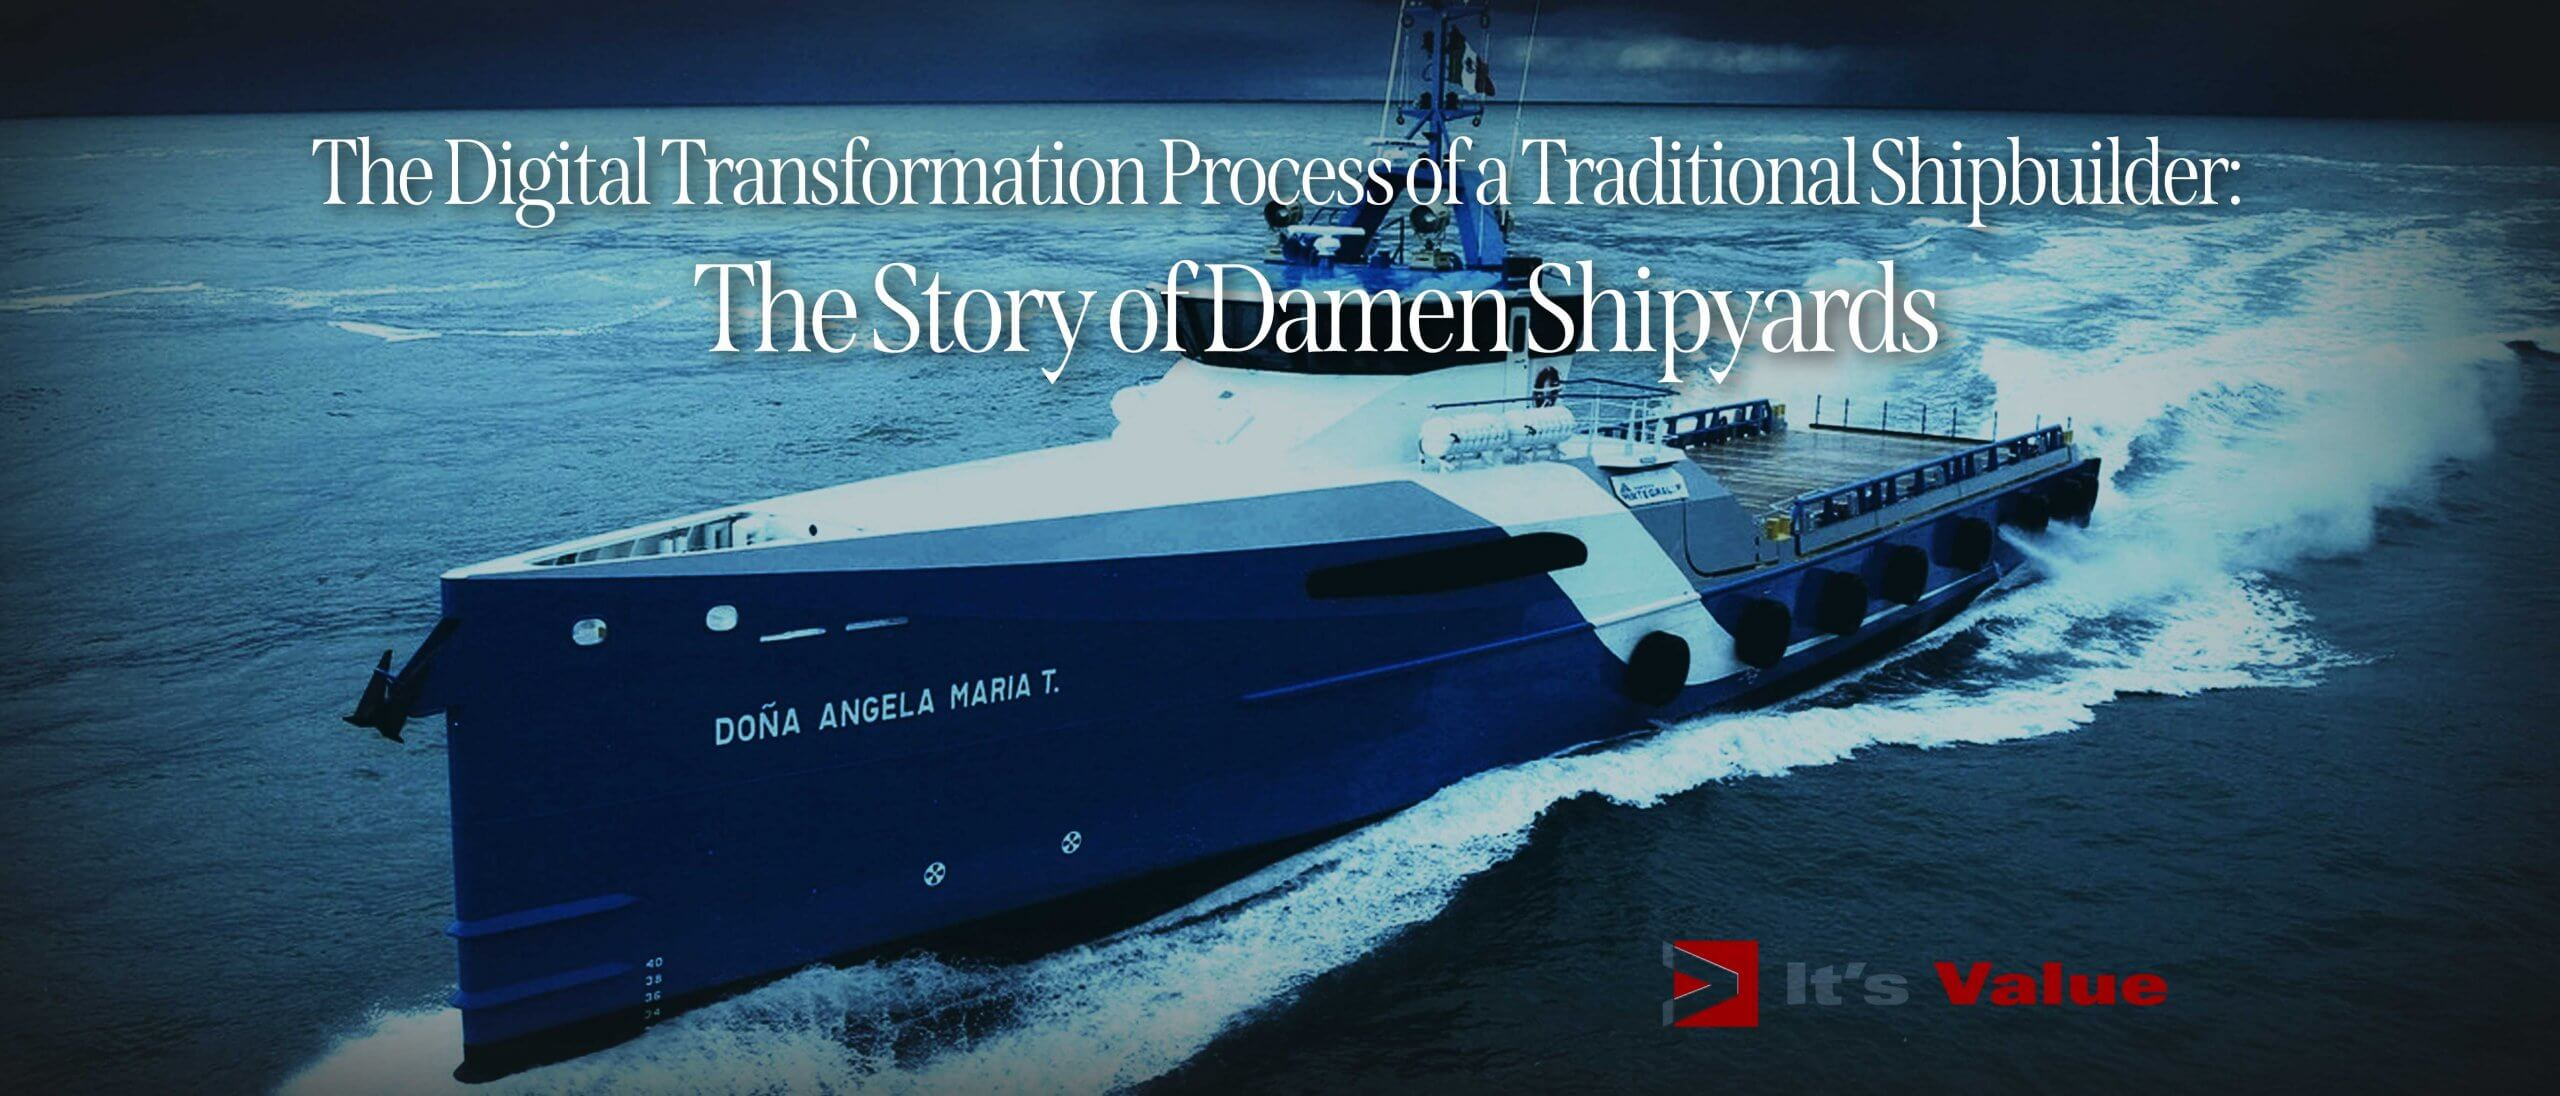 The Digital Transformation Process of a Traditional Shipbuilder: The Story of Damen Shipyards